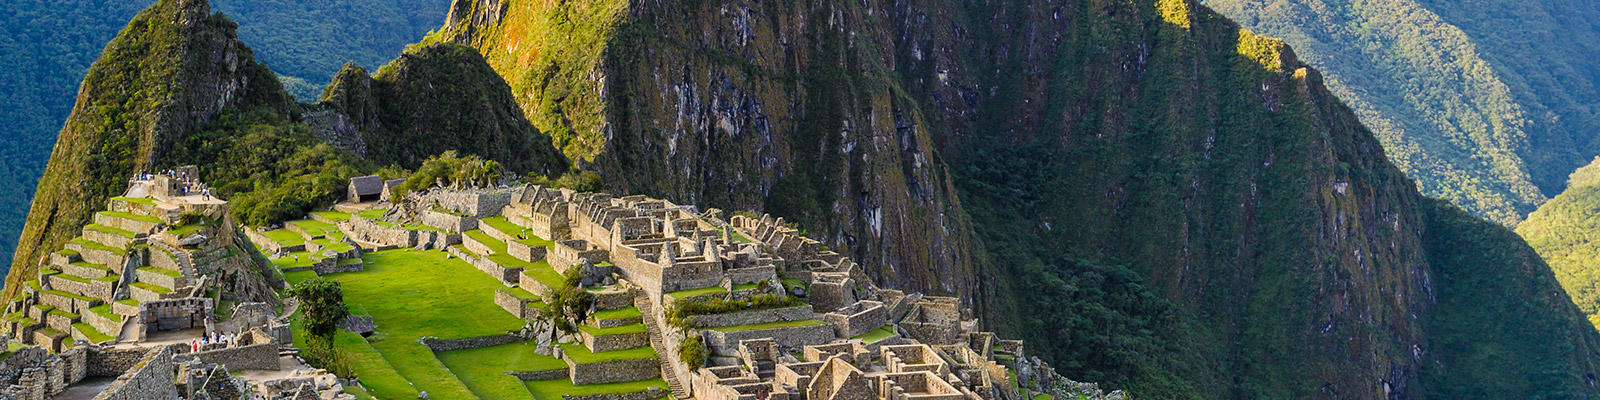 6-must-see-spots-in-south-america